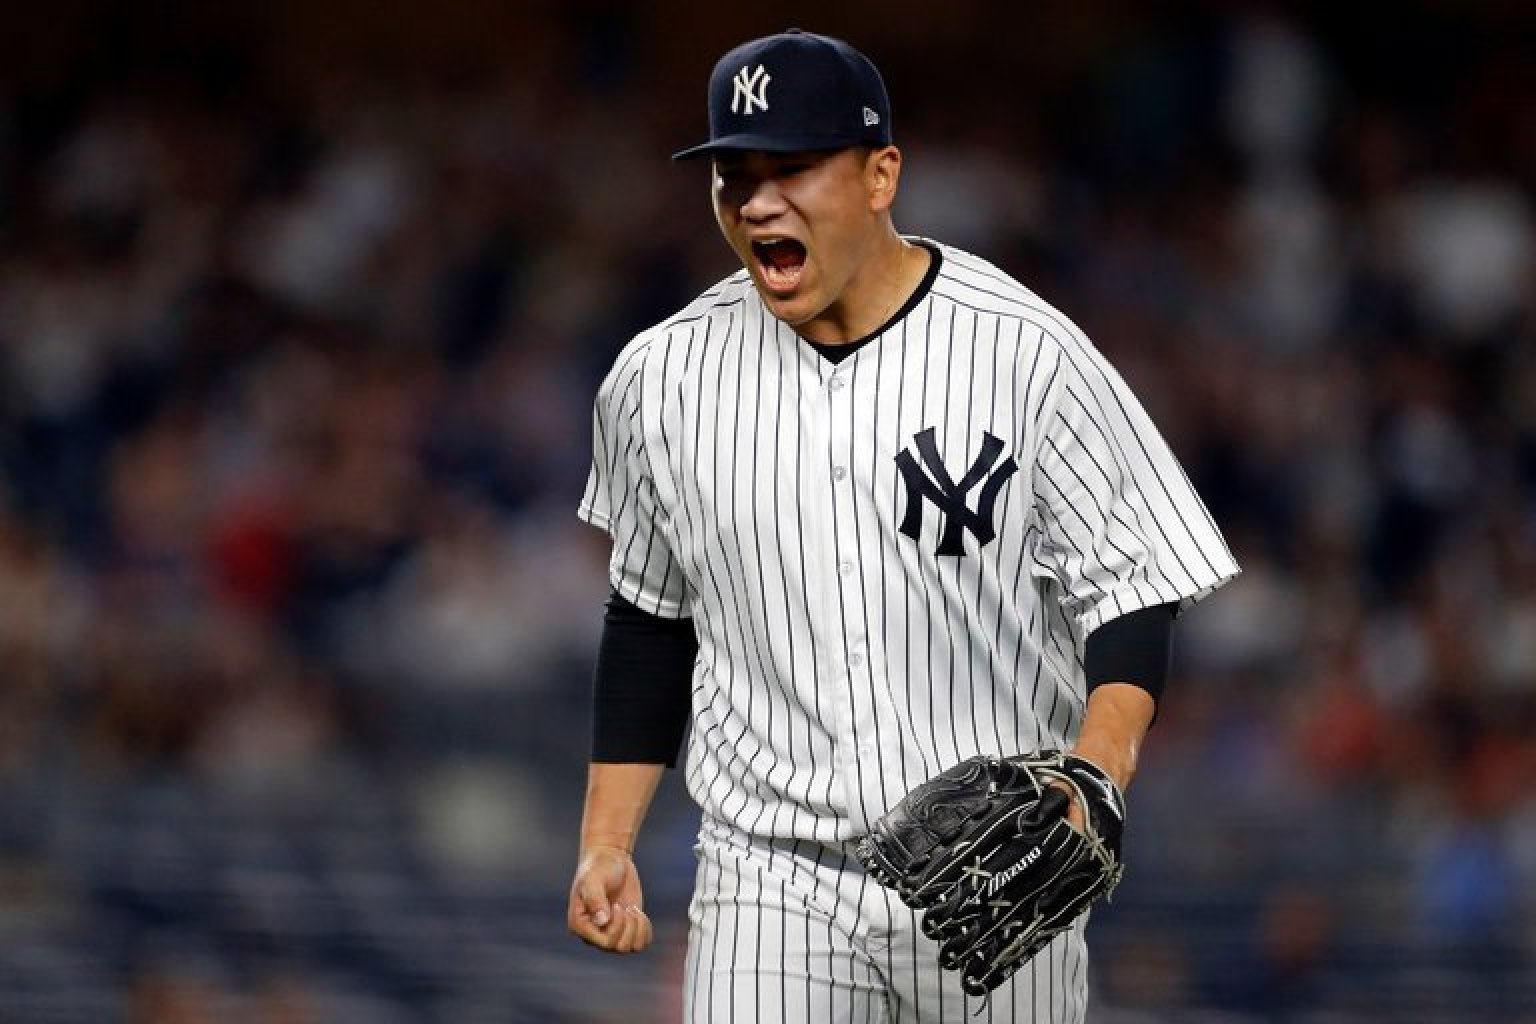 Could Tanaka's Opt-in Lead to Another Japanese Phenom in Pinstripes?